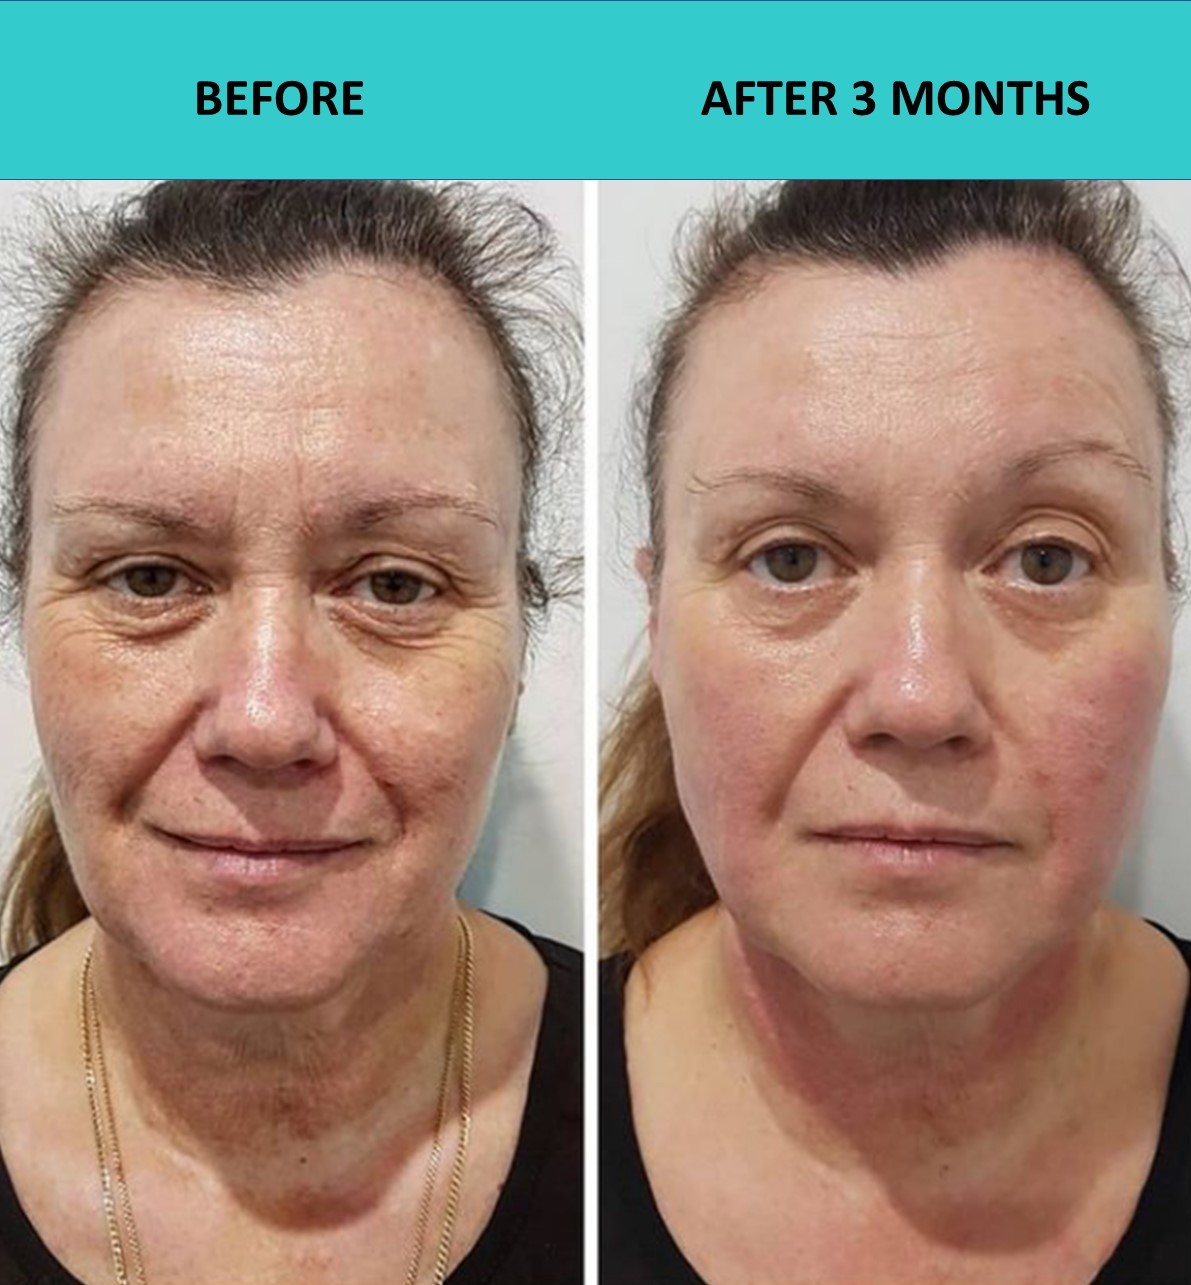 4D HIFU in action - another happy customer three months after her procedure.